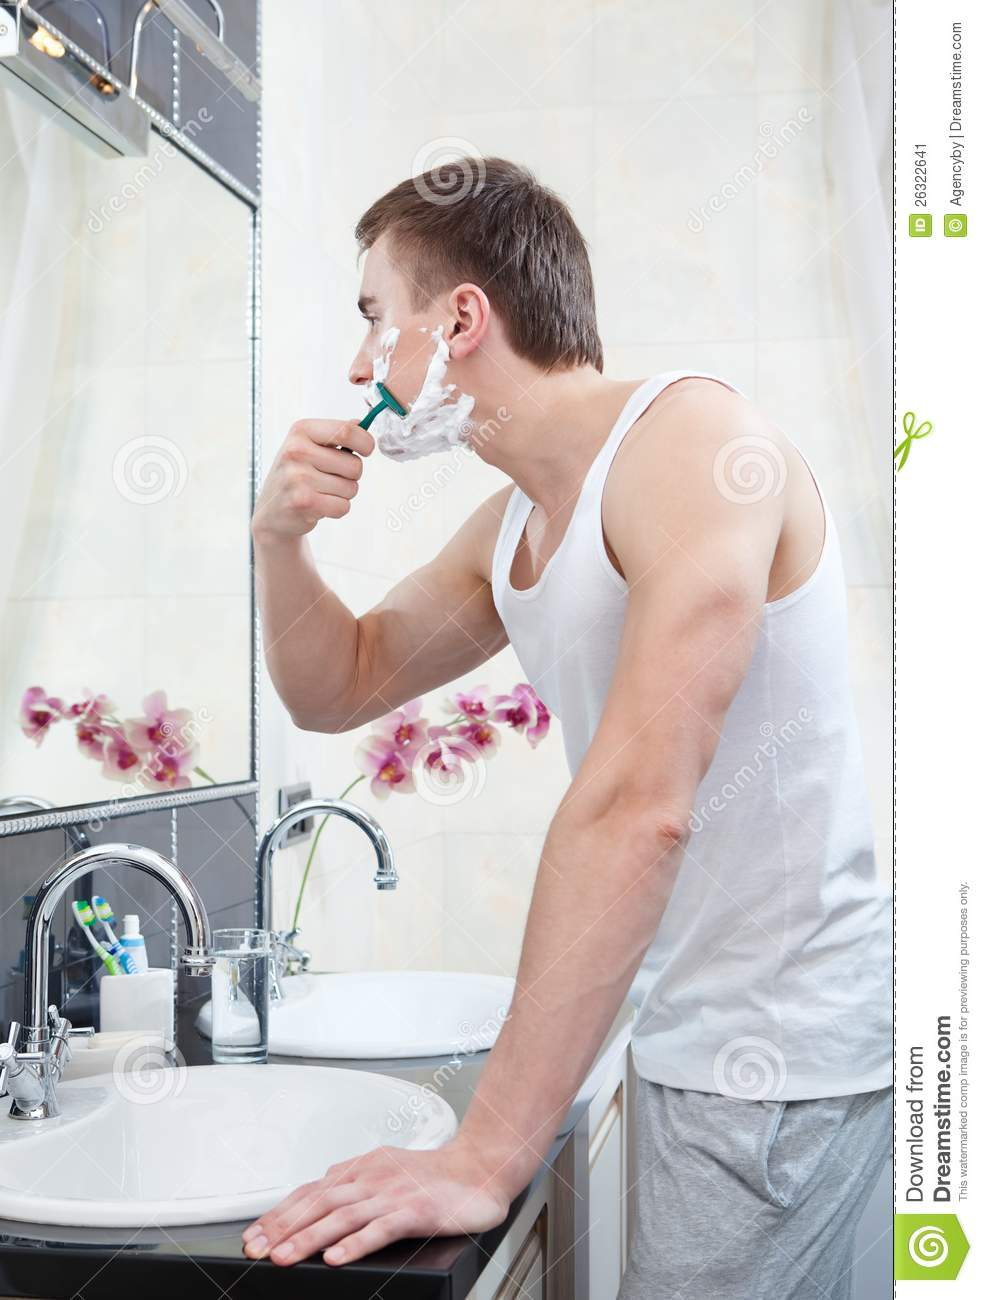 man shaves in the bathroom - In The Bathroom